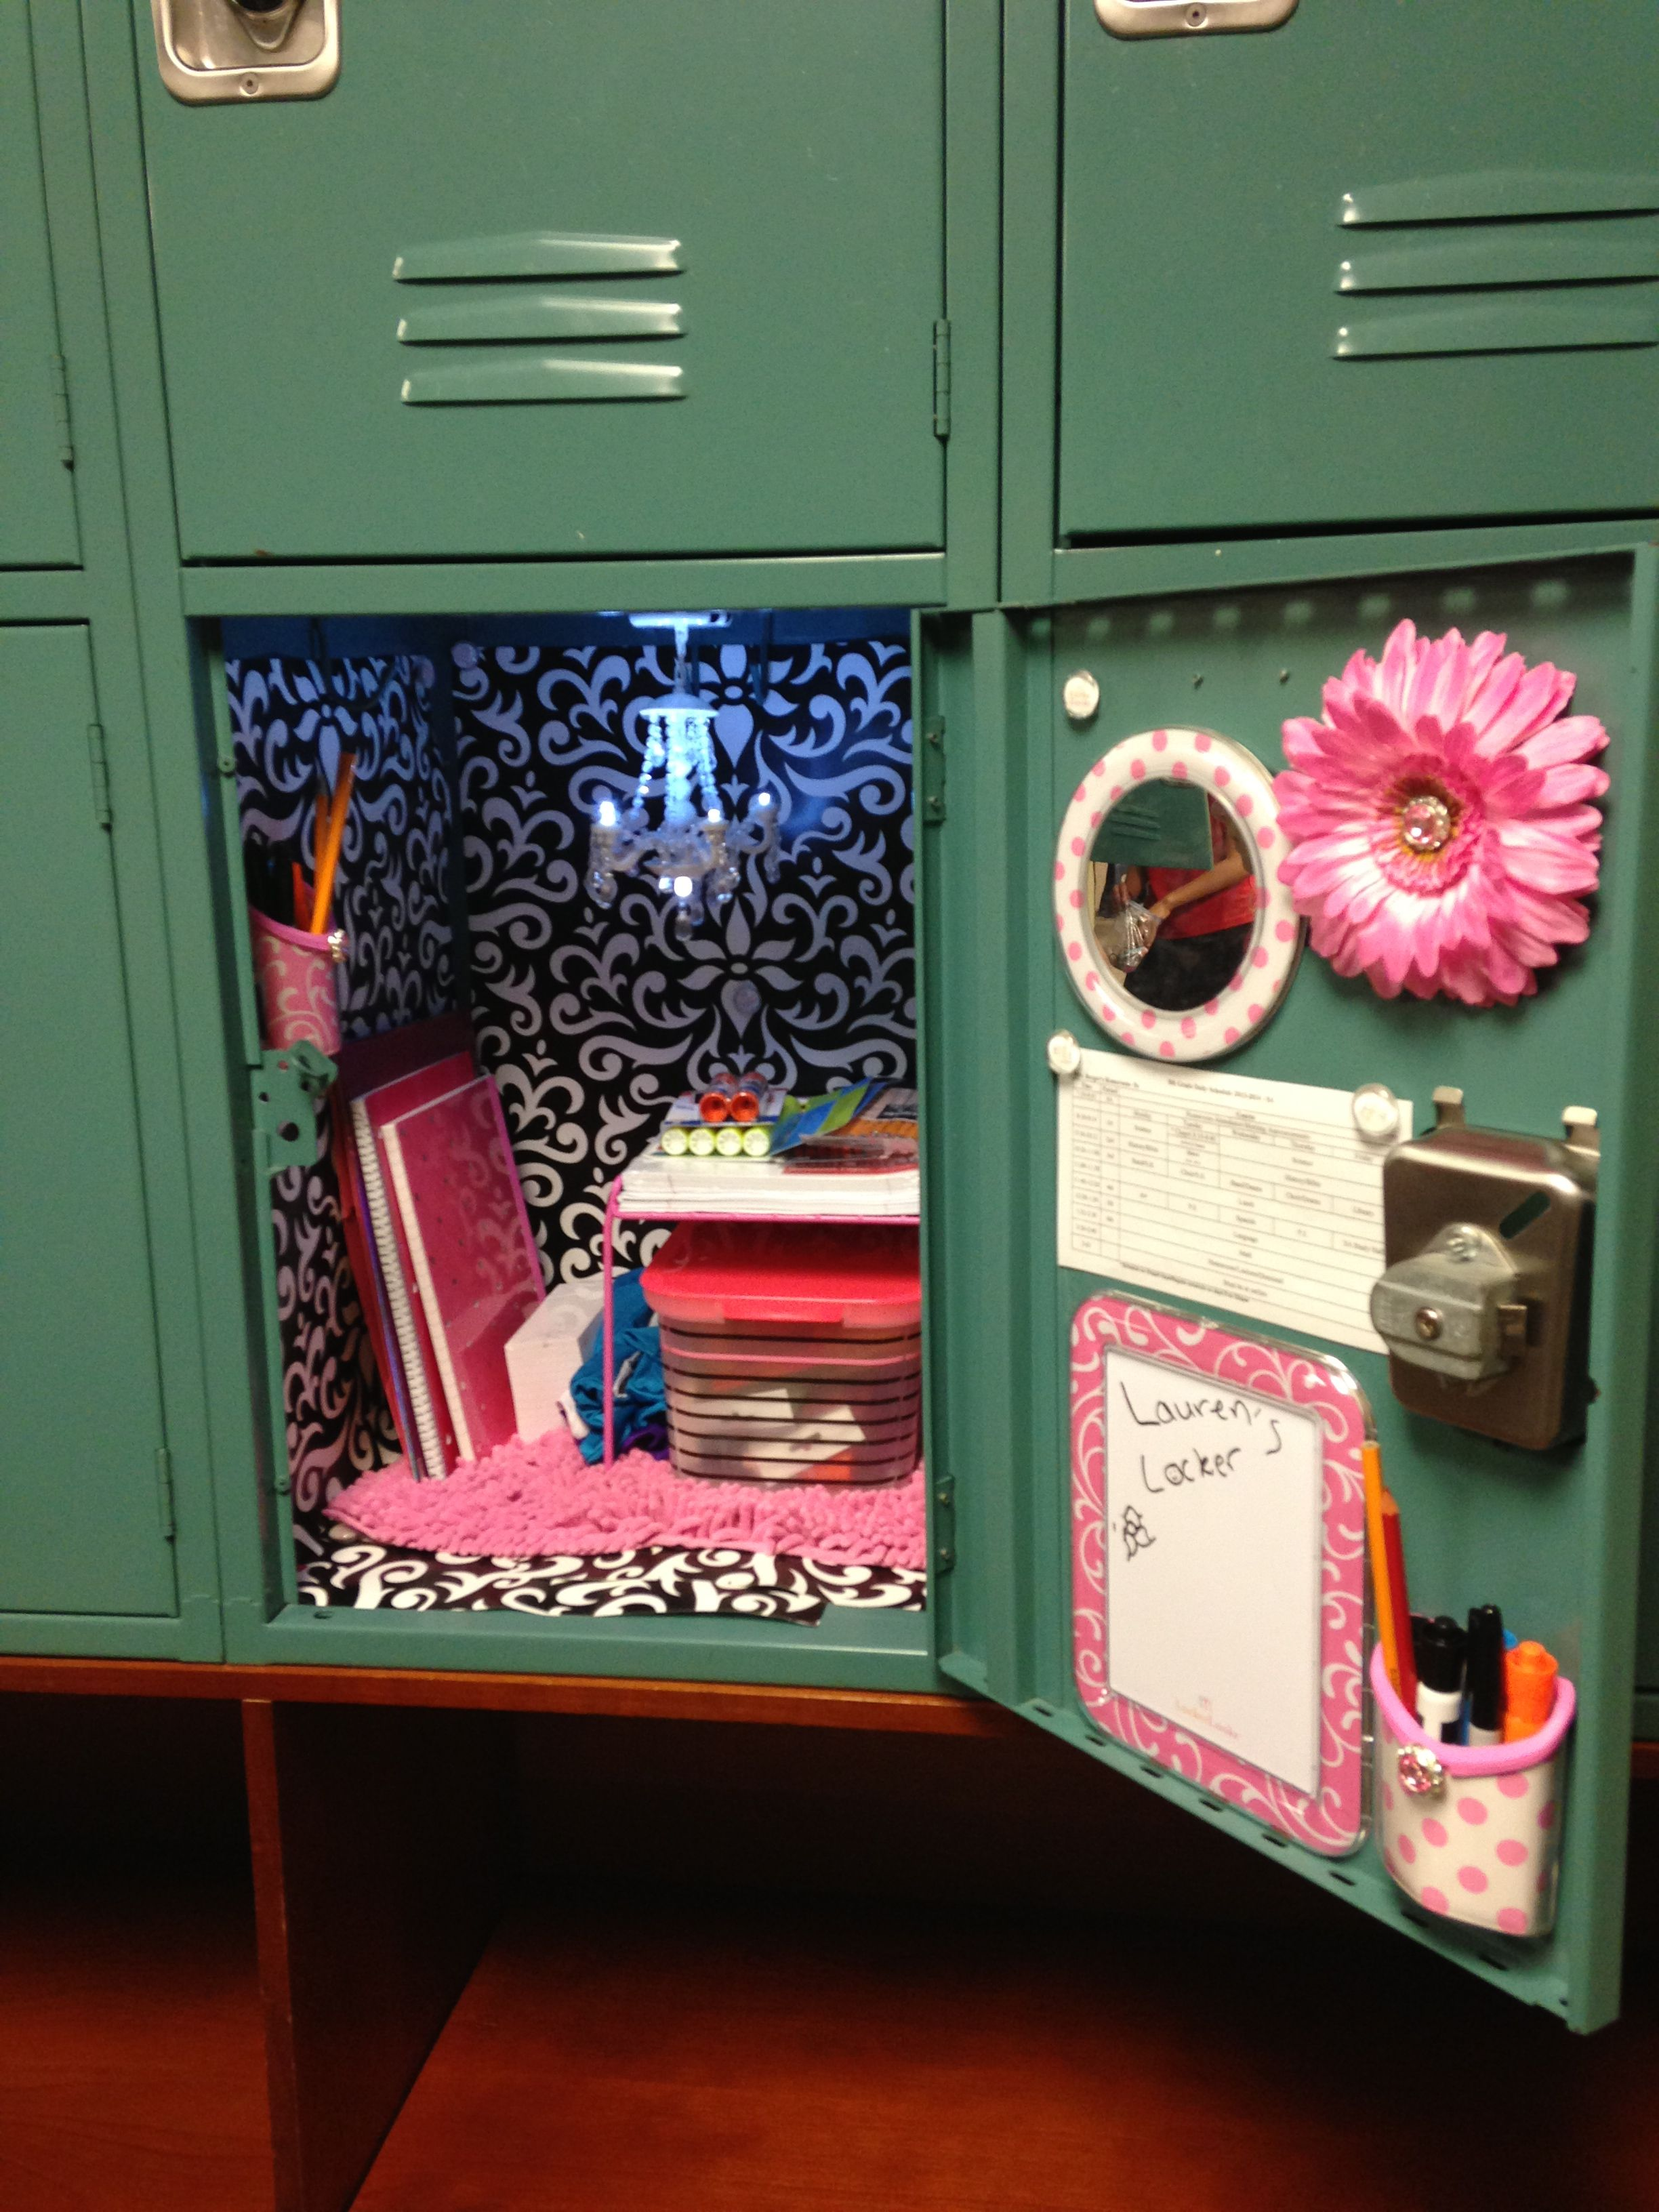 Pack Your Locker Full Of Personality With Fun And Functional Accessories Like Magnets And M School Lockers School Locker Decorations School Locker Organization